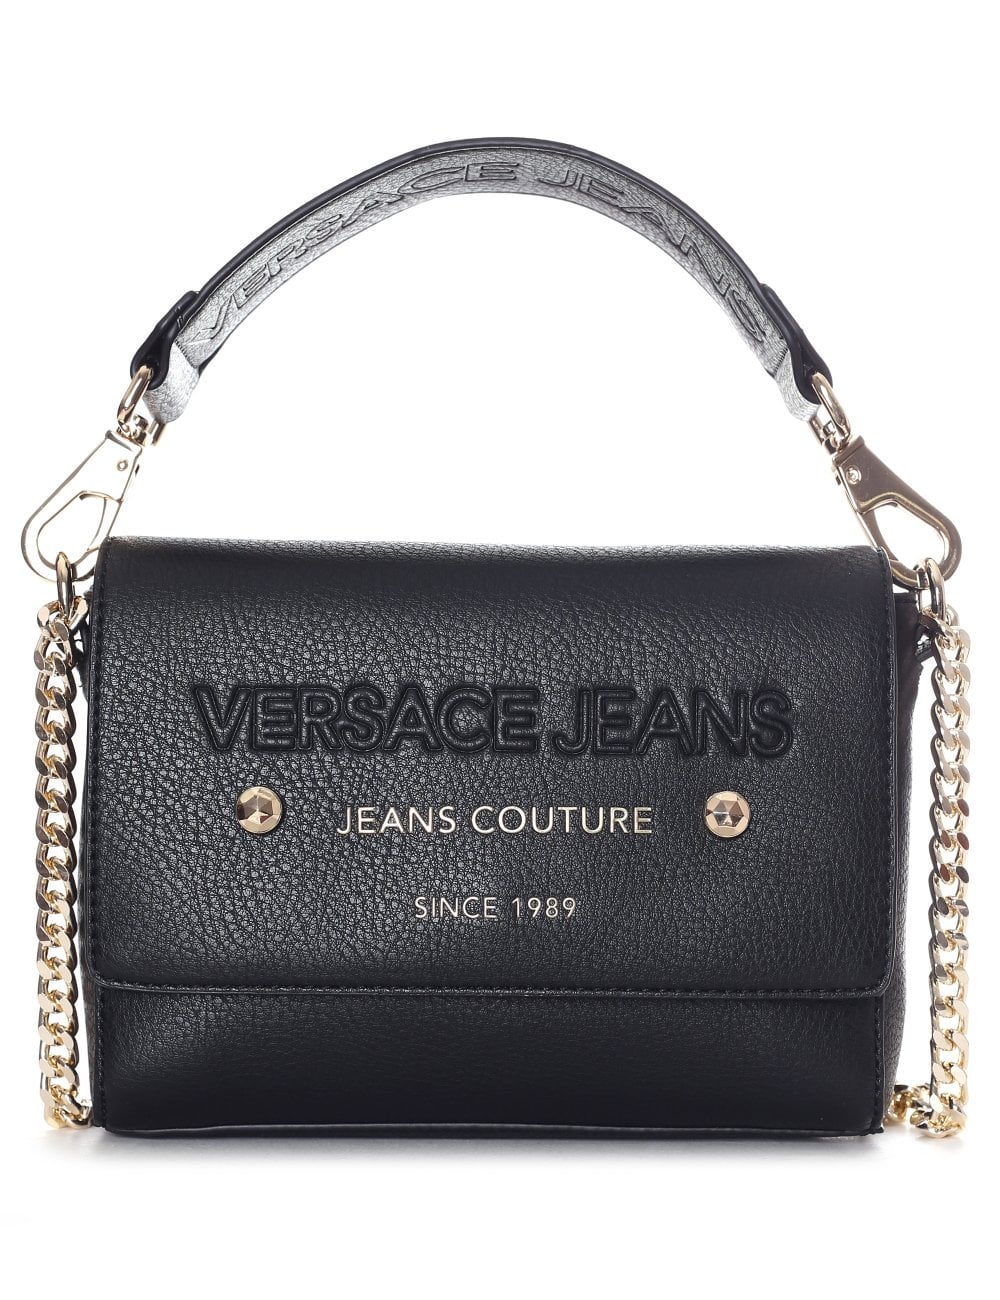 d0b7de36fd Versace Jeans Women's Couture Shoulder Bag